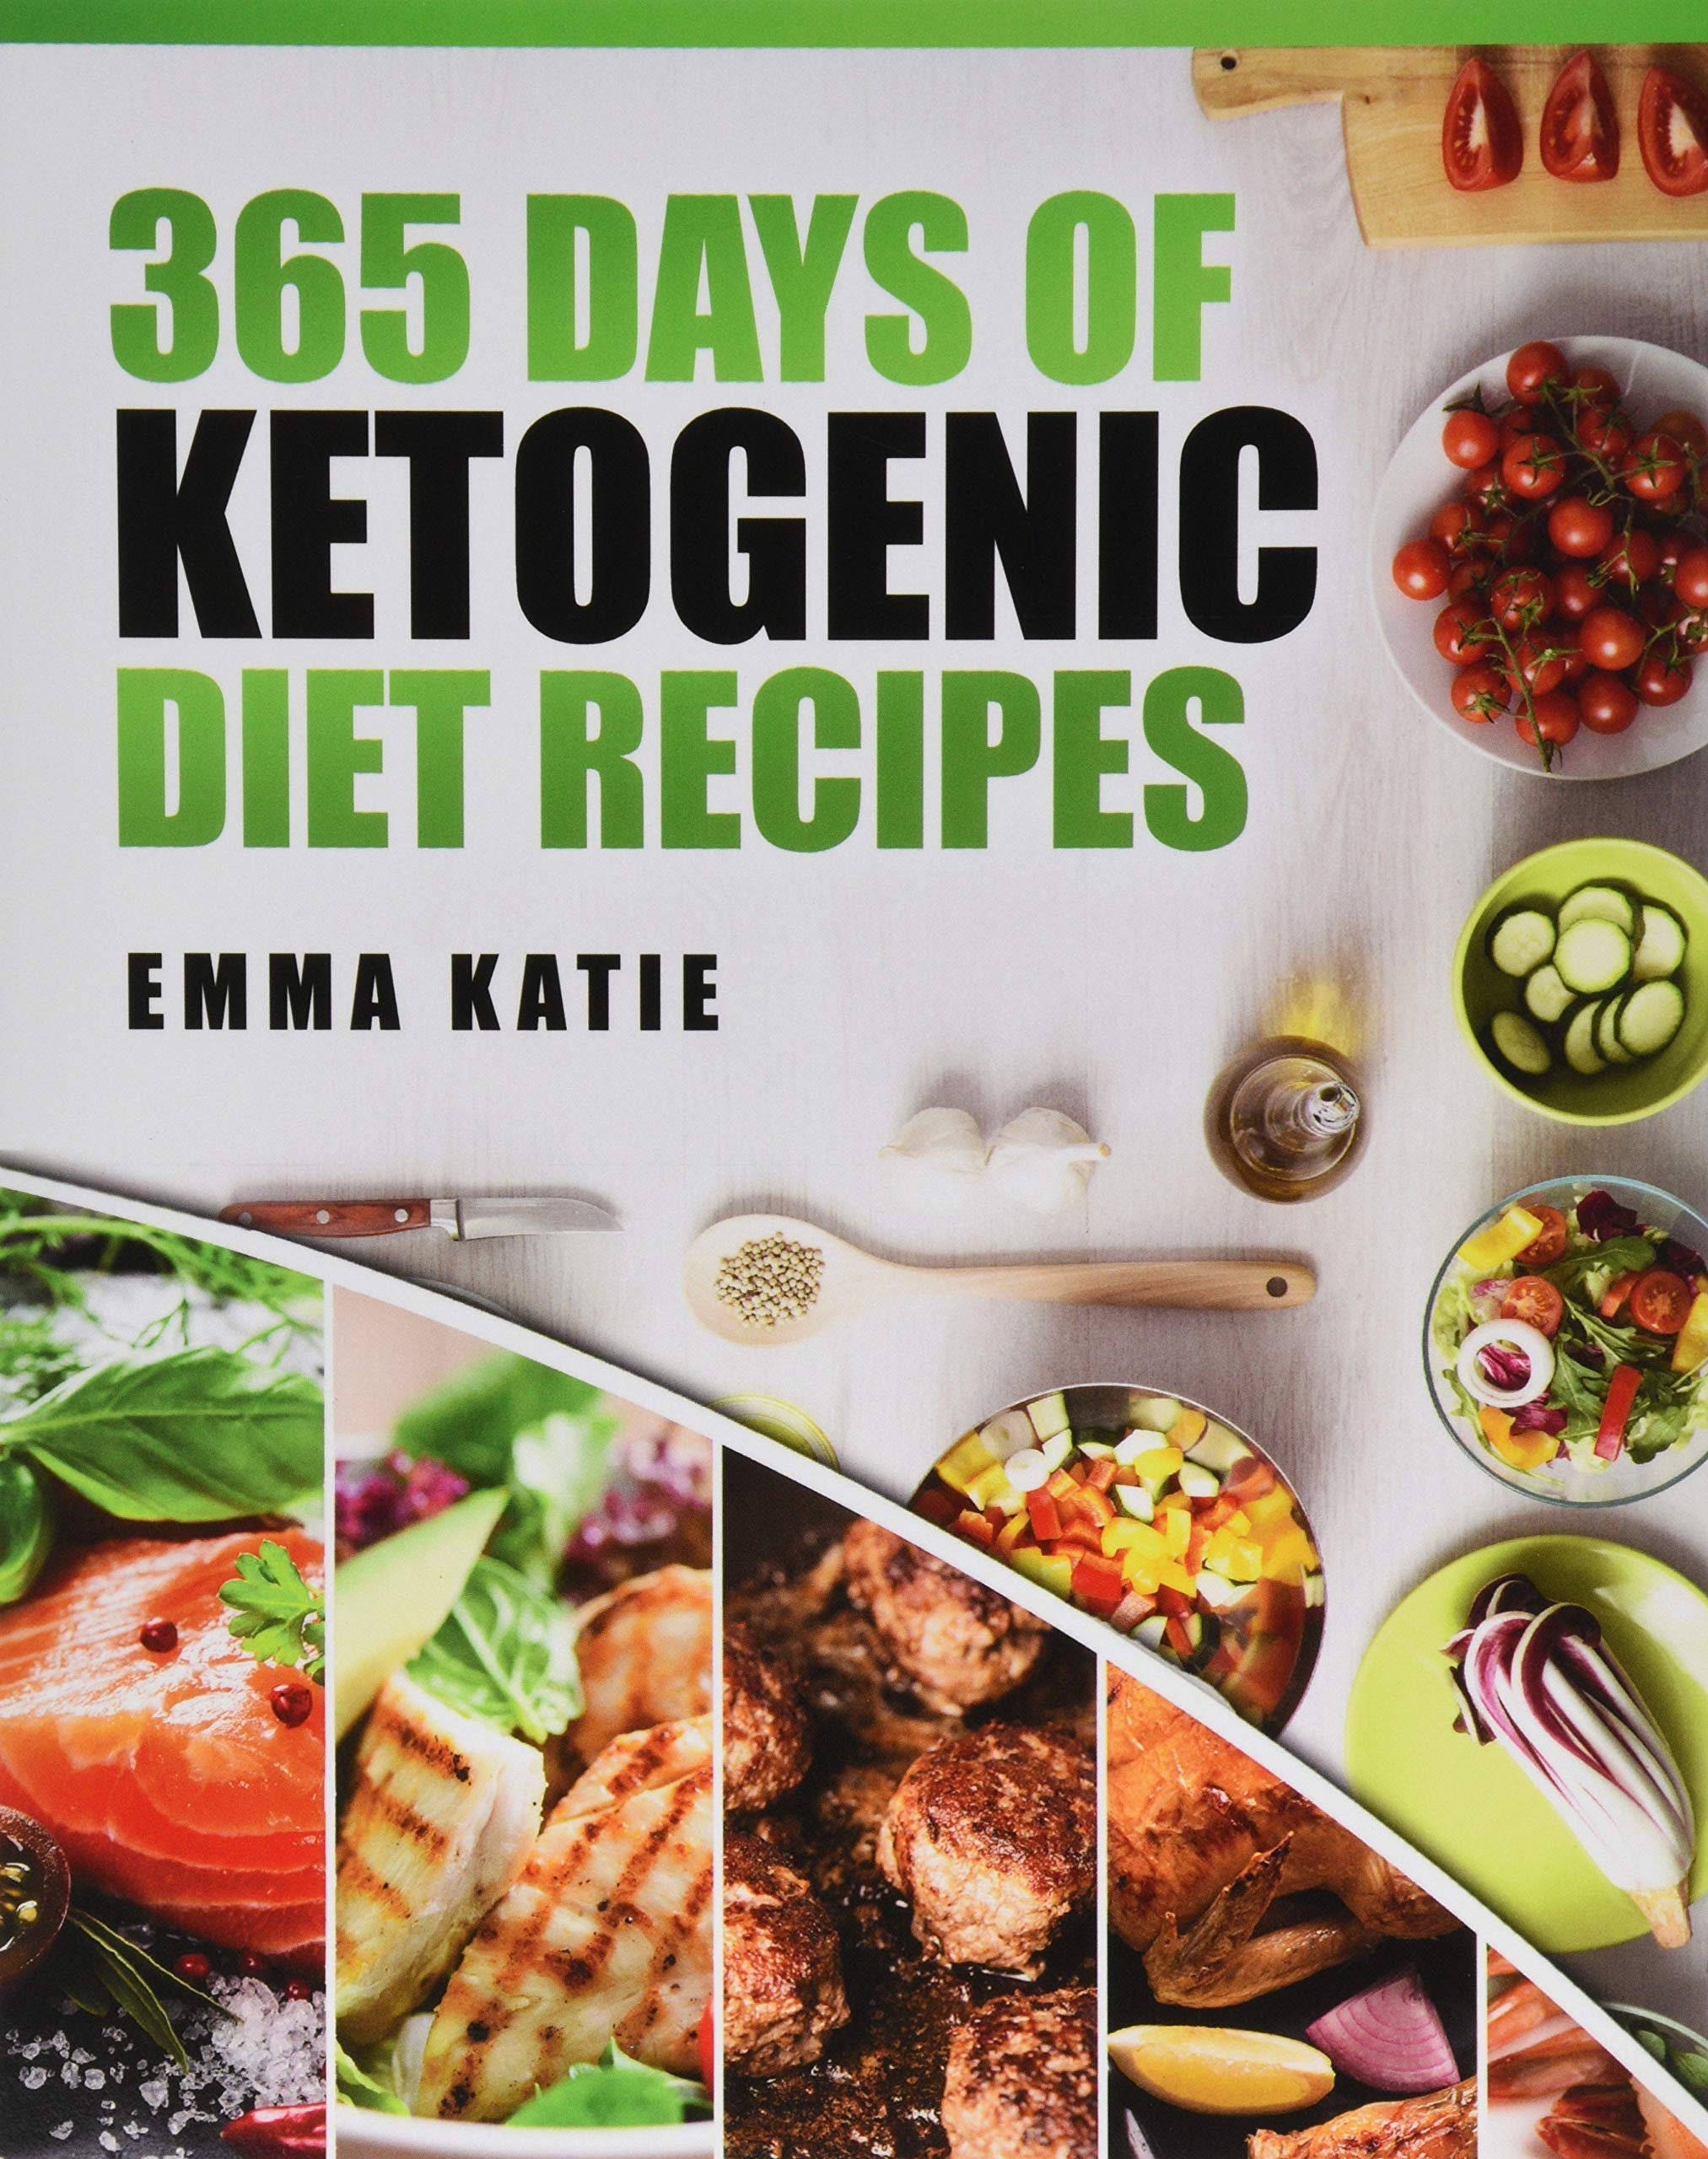 Amazon Com 365 Days Of Ketogenic Diet Recipes Ketogenic Ketogenic Diet Ketogenic Cookbook Keto For Beginners Kitchen Cooking Diet Plan Cleanse Healthy Low Carb Paleo Meals Whole Food Weight Loss 9781541199941 Katie Emma